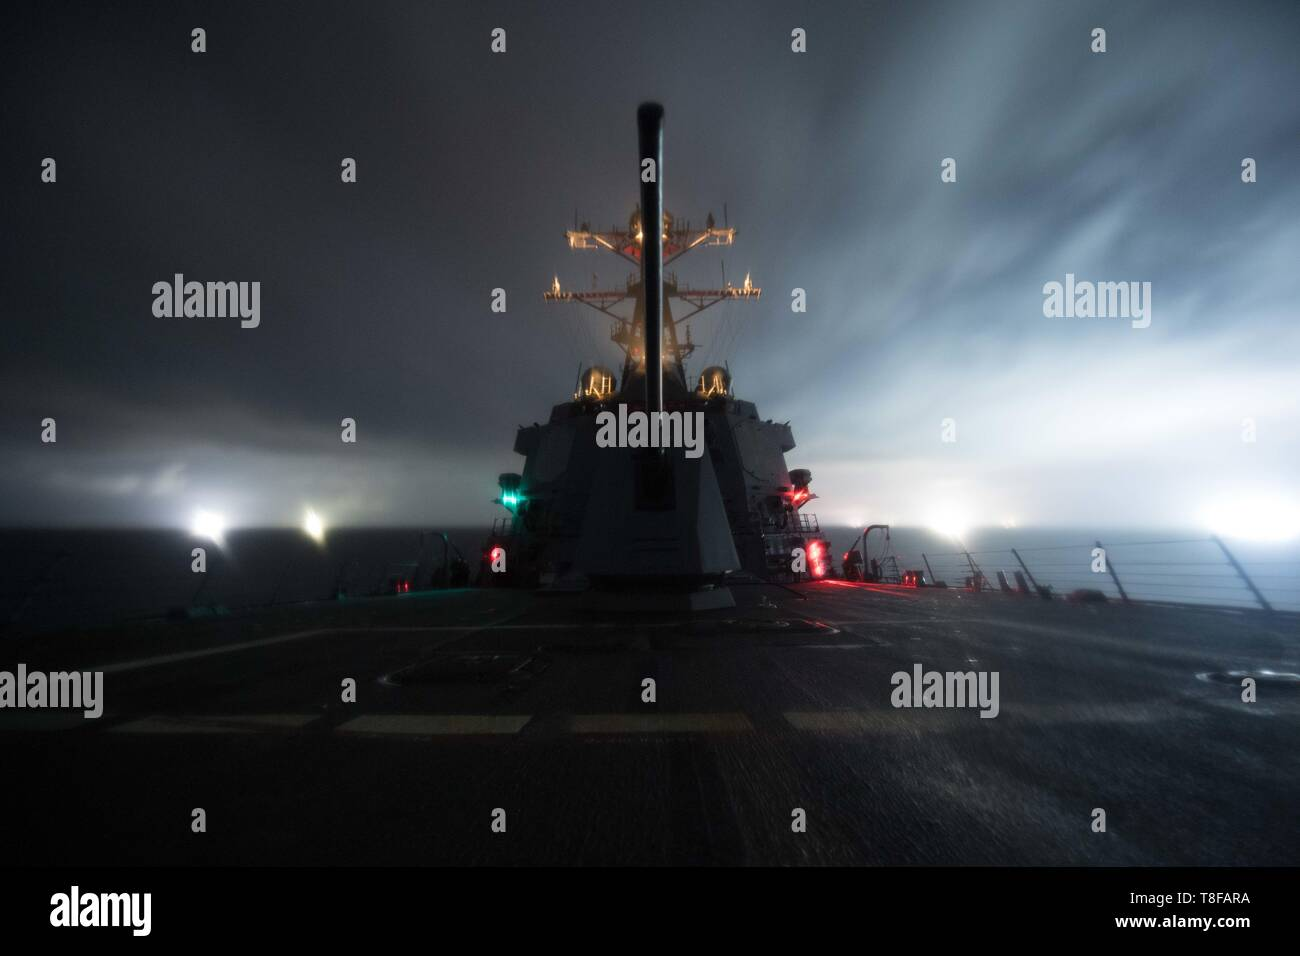 190510-N-OW019-1003 SOUTH CHINA SEA (May 10, 2019) The guided-missile destroyer USS Chung-Hoon (DDG 93) sails in the South China Sea. Chung-Hoon is deployed to the U.S. 7th Fleet area of operations in support of security and stability in the Indo-Pacific region. (U.S. Navy photo by Mass Communication Specialist 2nd Class Logan C. Kellums) - Stock Image